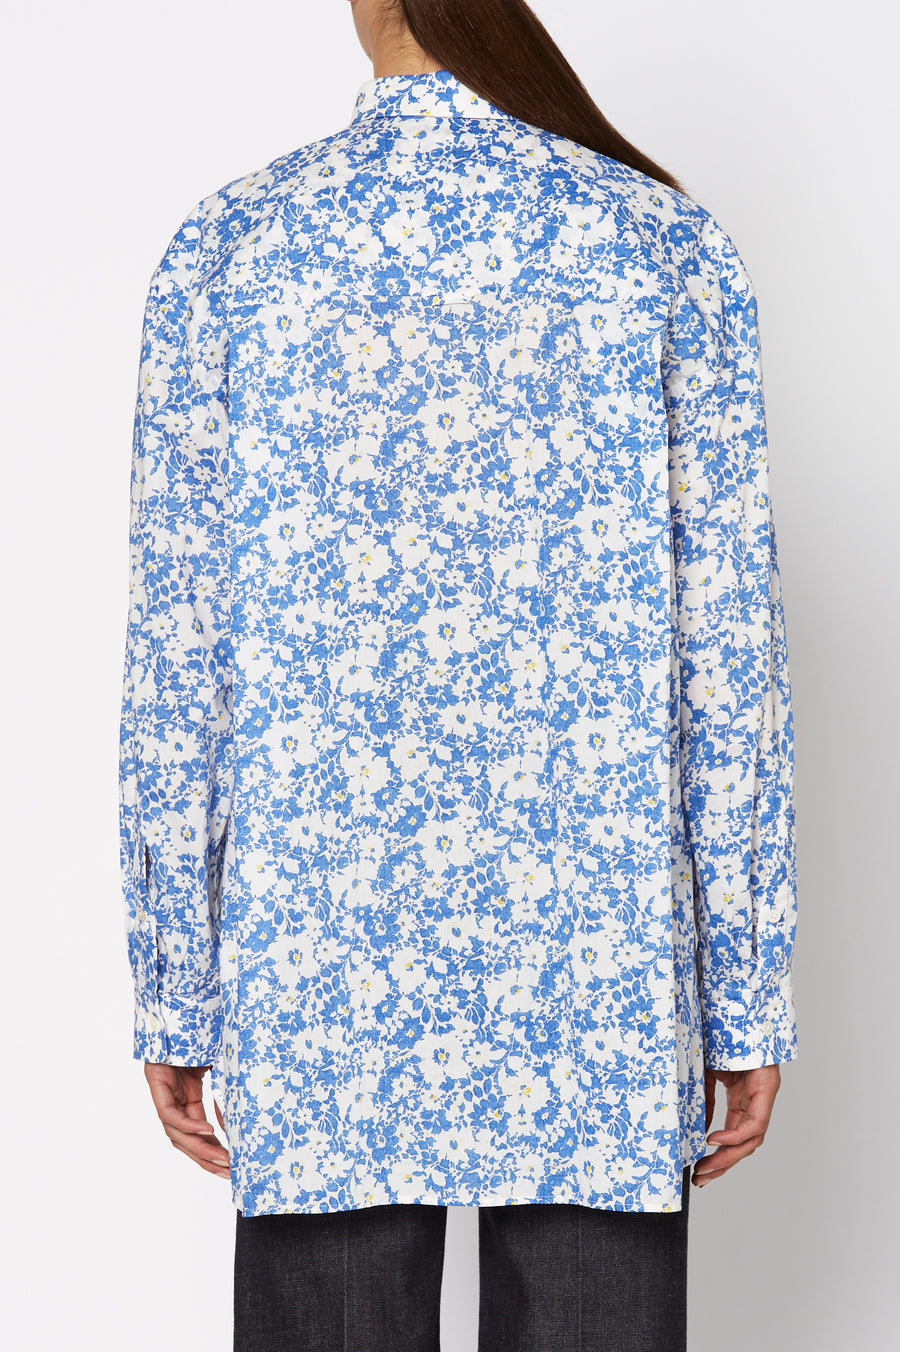 FLORAL BUTTON DOWN SHIRT, BLUE color